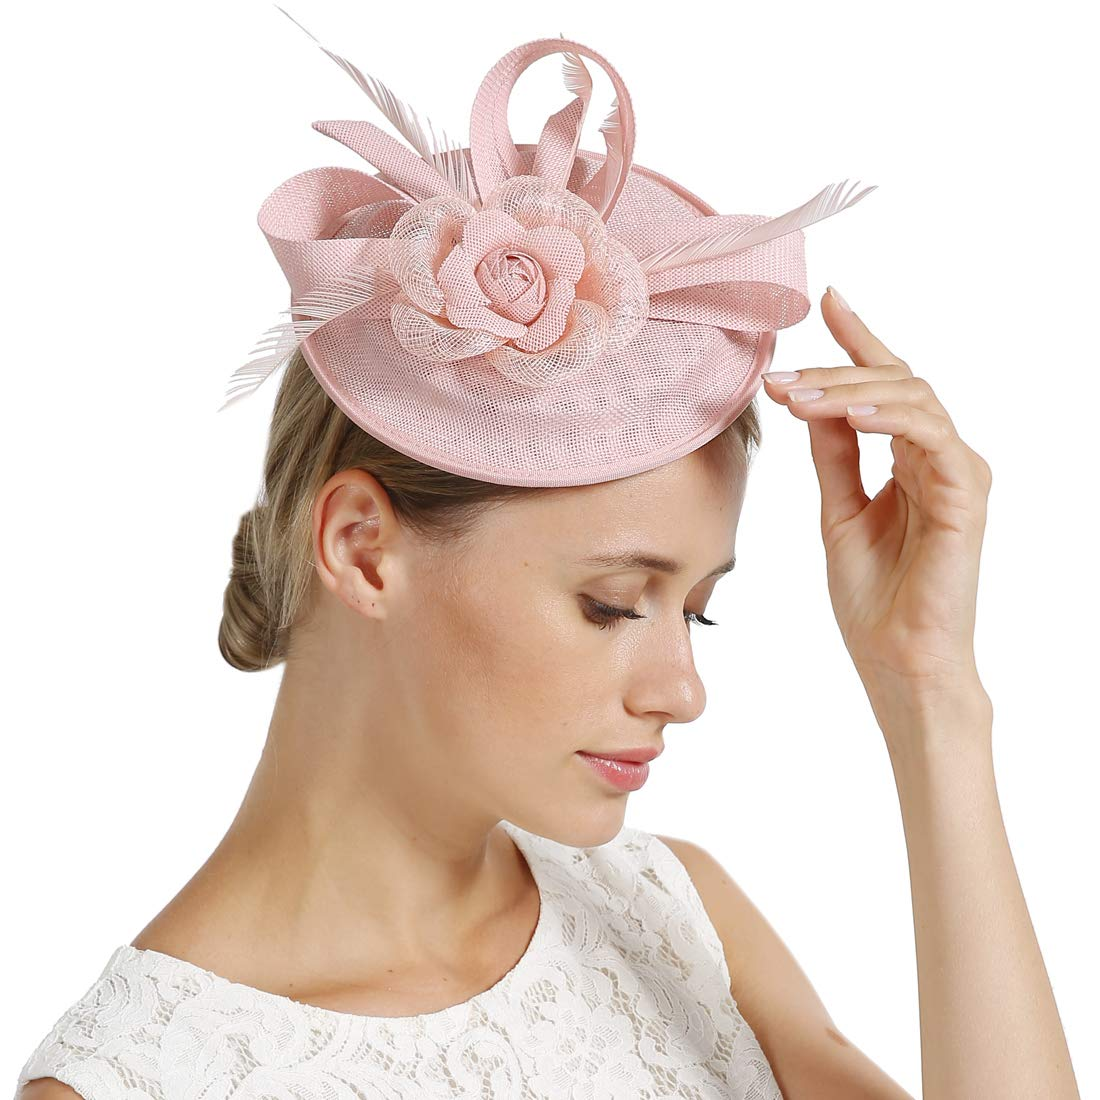 FAYBOX Fascinators Hat Flower Mesh Ribbons Feathers Tea Party Cocktail Headband for Girls and Women